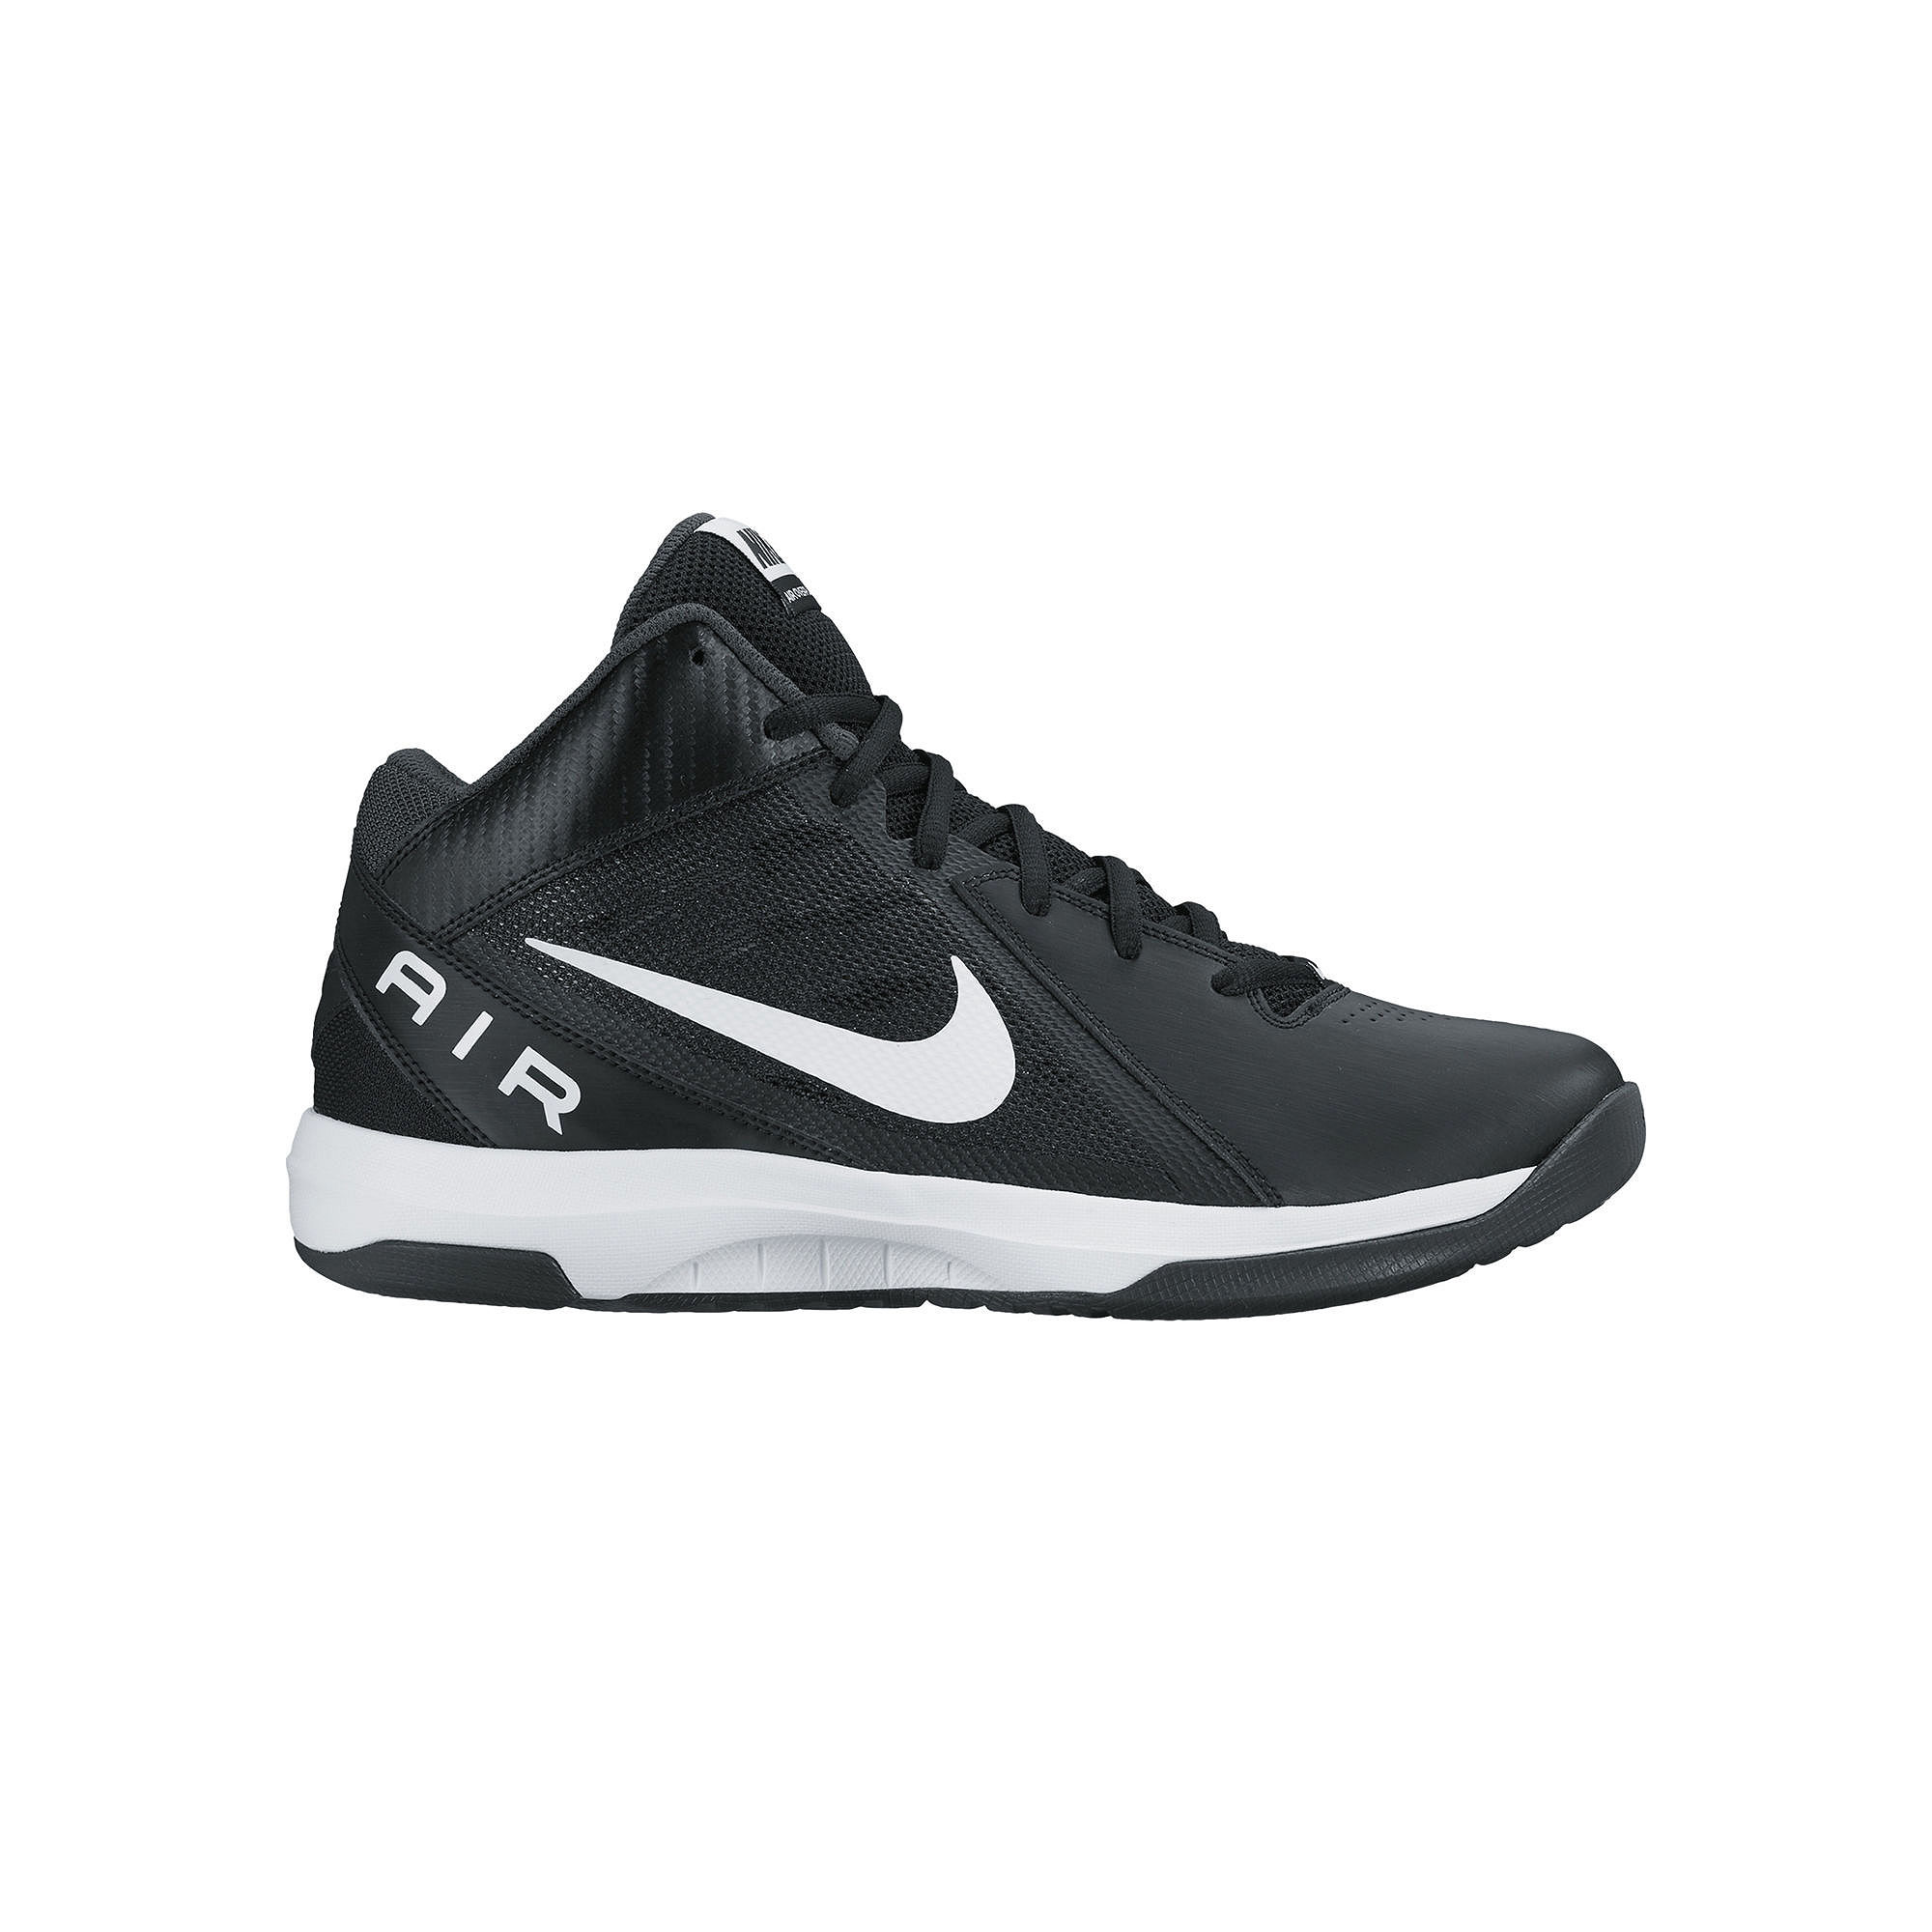 ... VIII Mens Basketball Shoes. UPC 886551740271 product image for Nike The  Air Overplay Ix Mens 831572-001 Black White